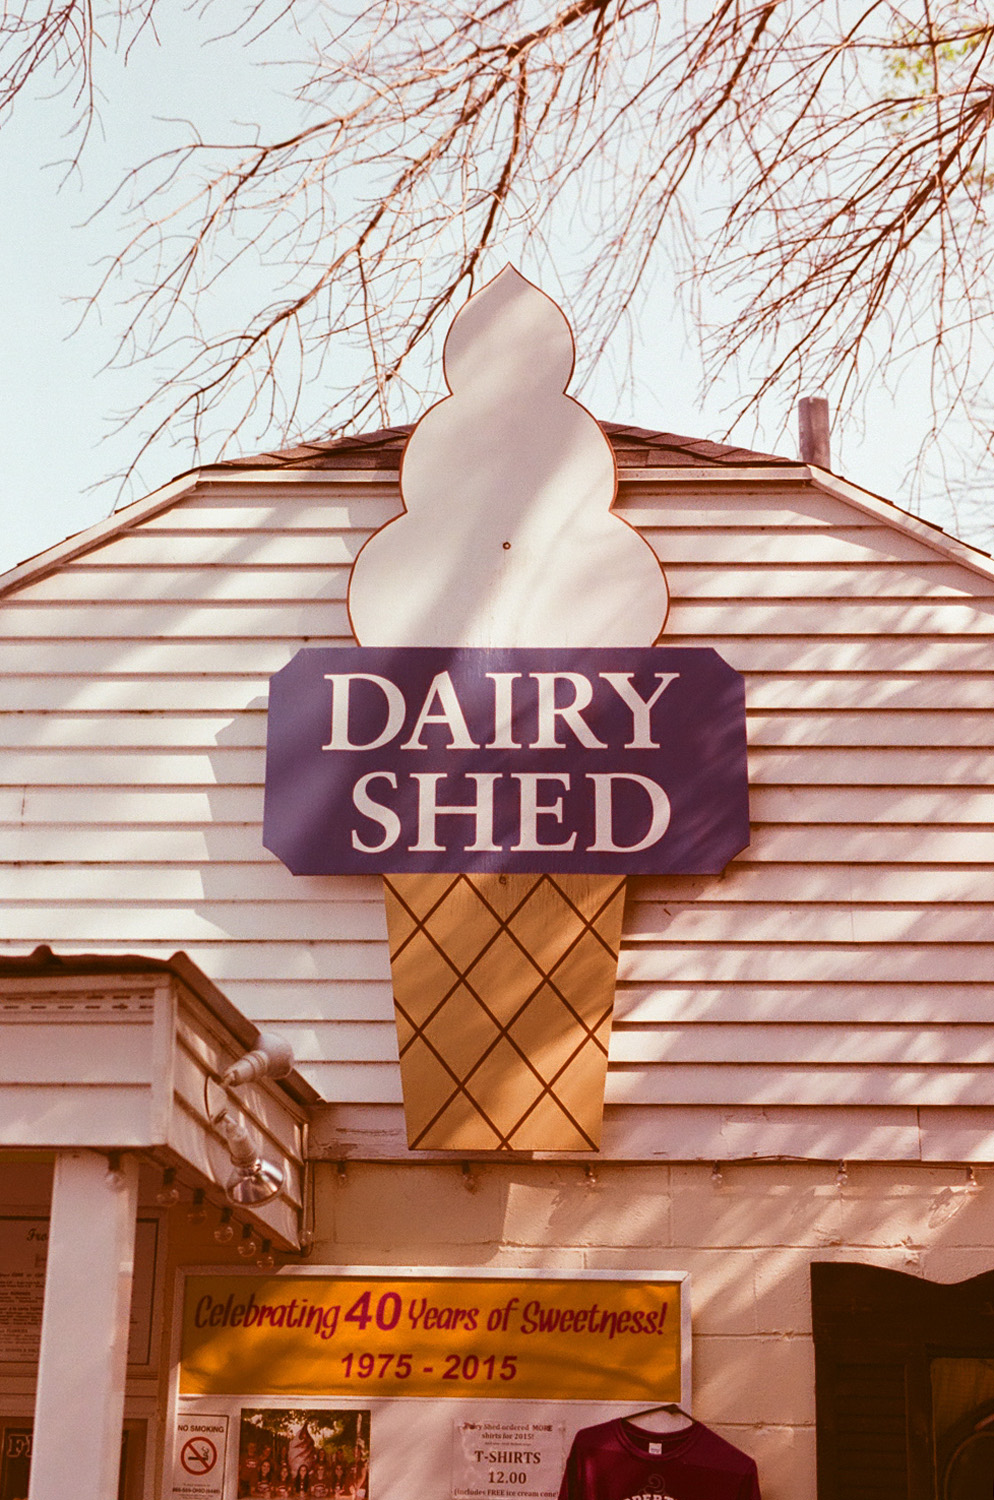 Seattle Film Works Photowalk - Bellbrook, Ohio - The Dairy Shed Sign